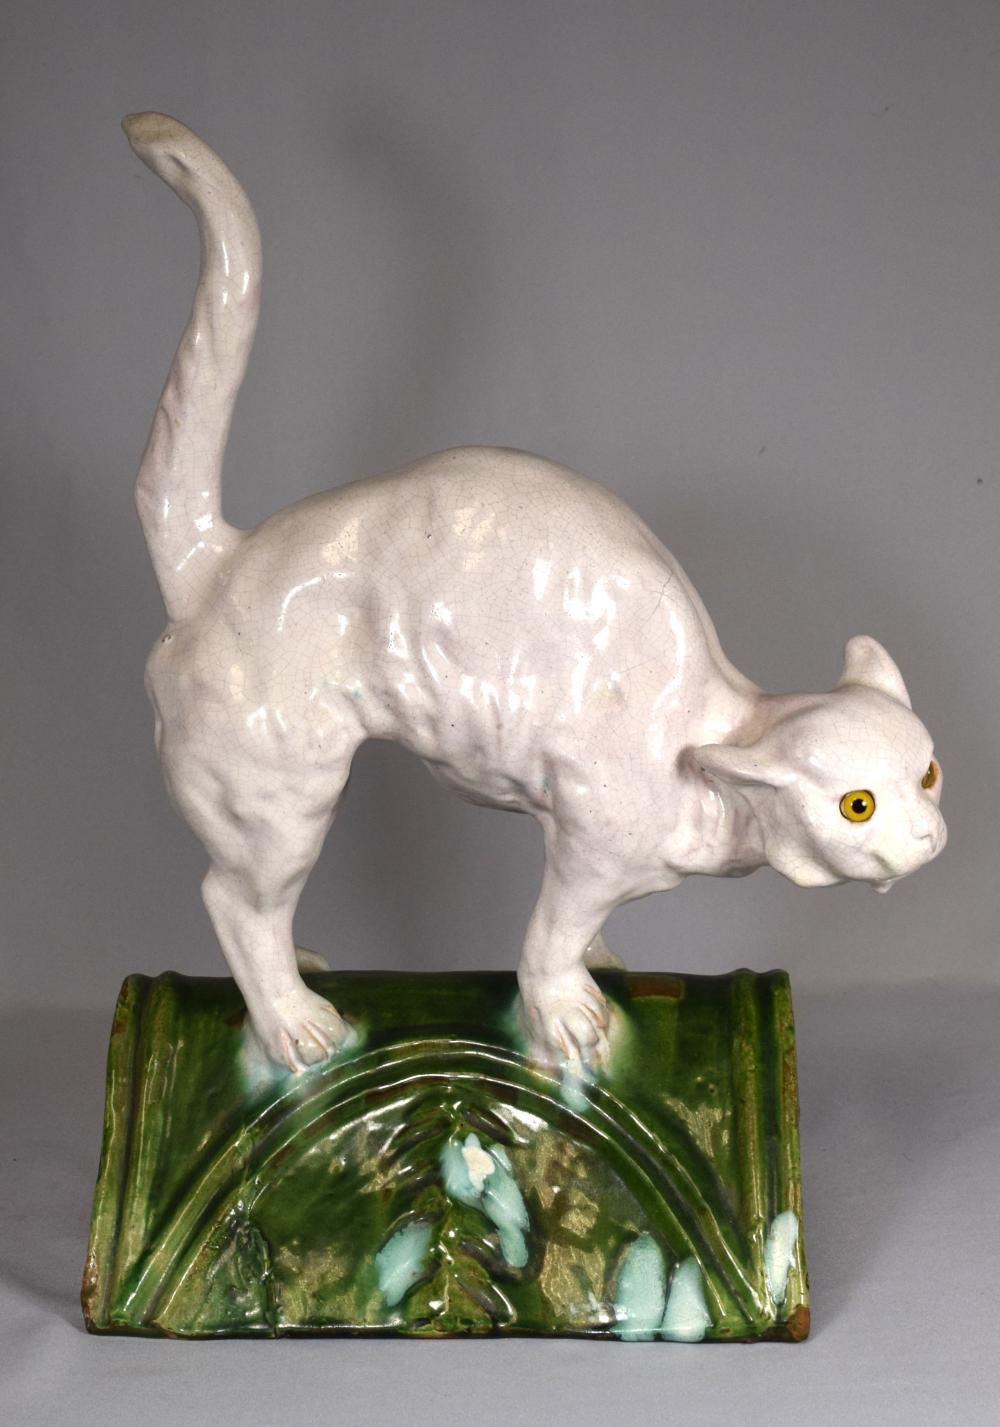 FRENCH FIGURAL CAT FORM ROOF TILE: